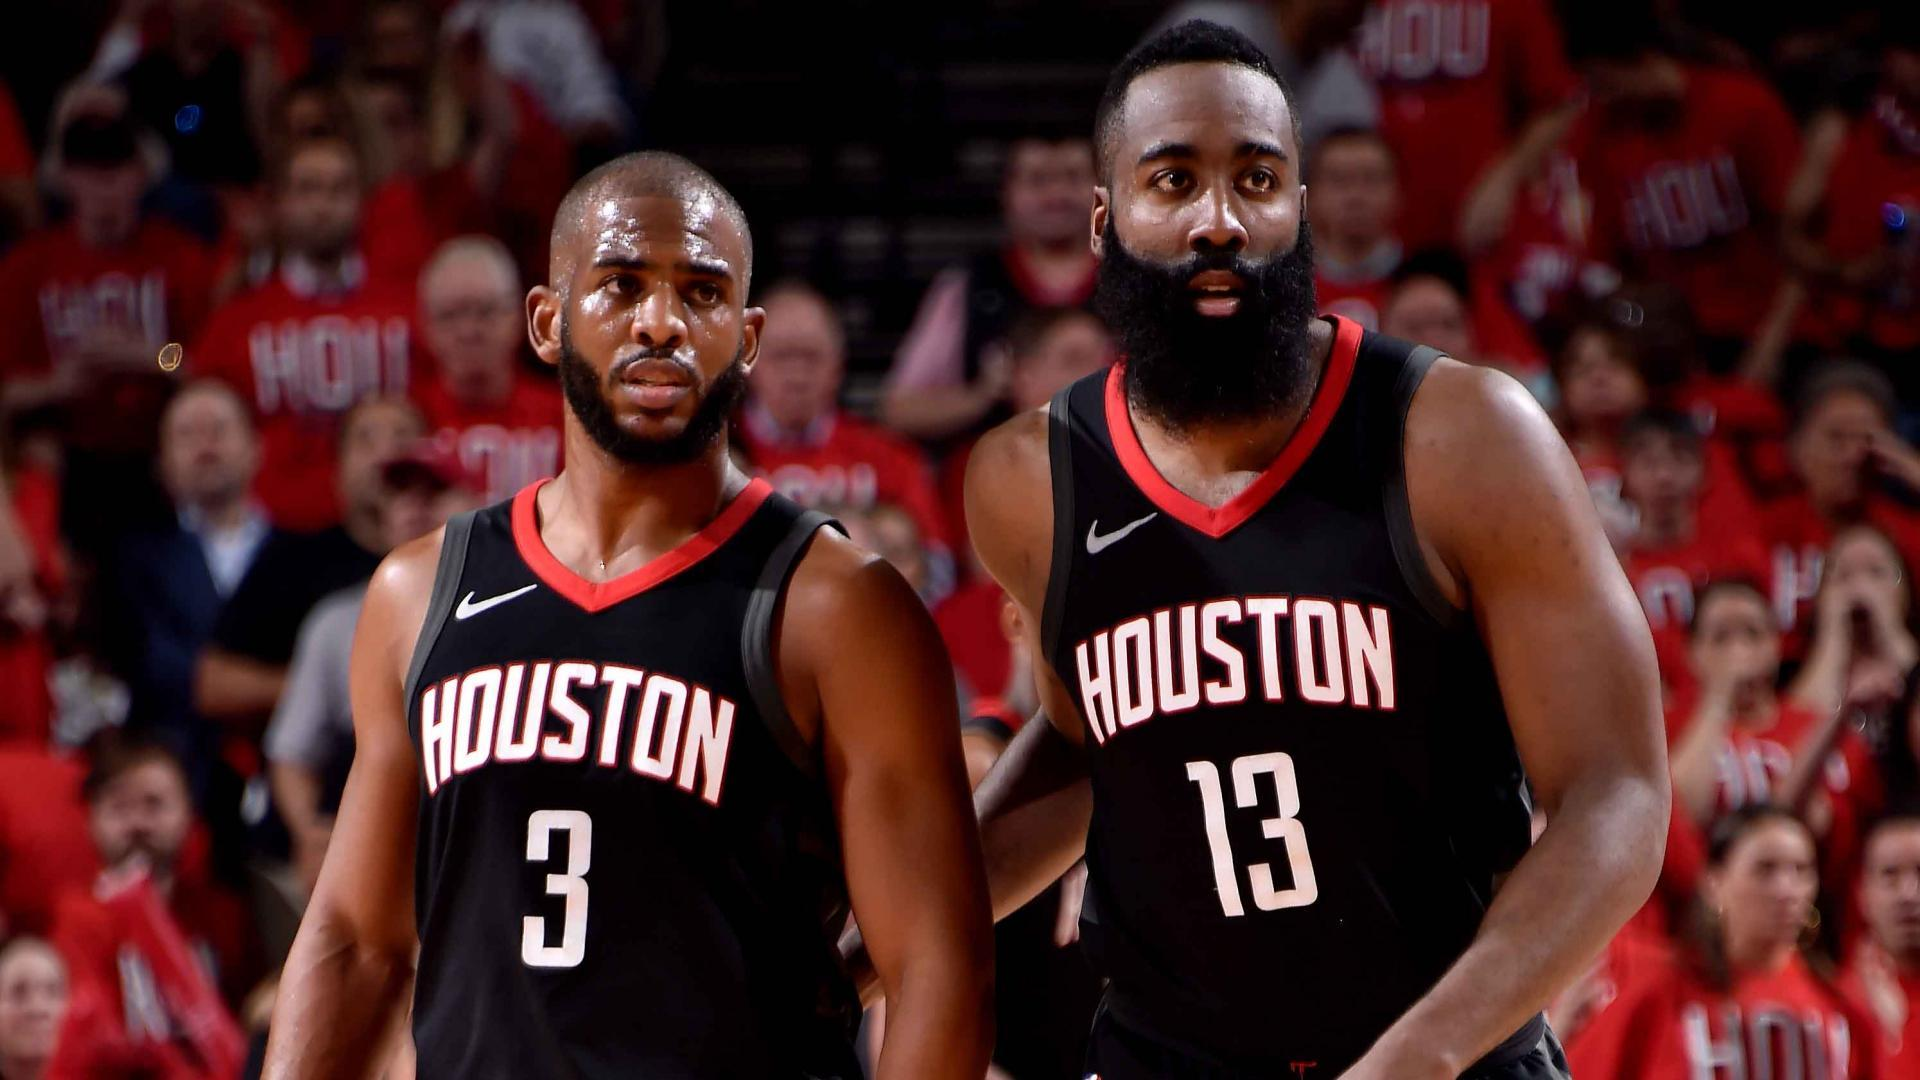 the rockets struggles what is hindering houston powcast sports